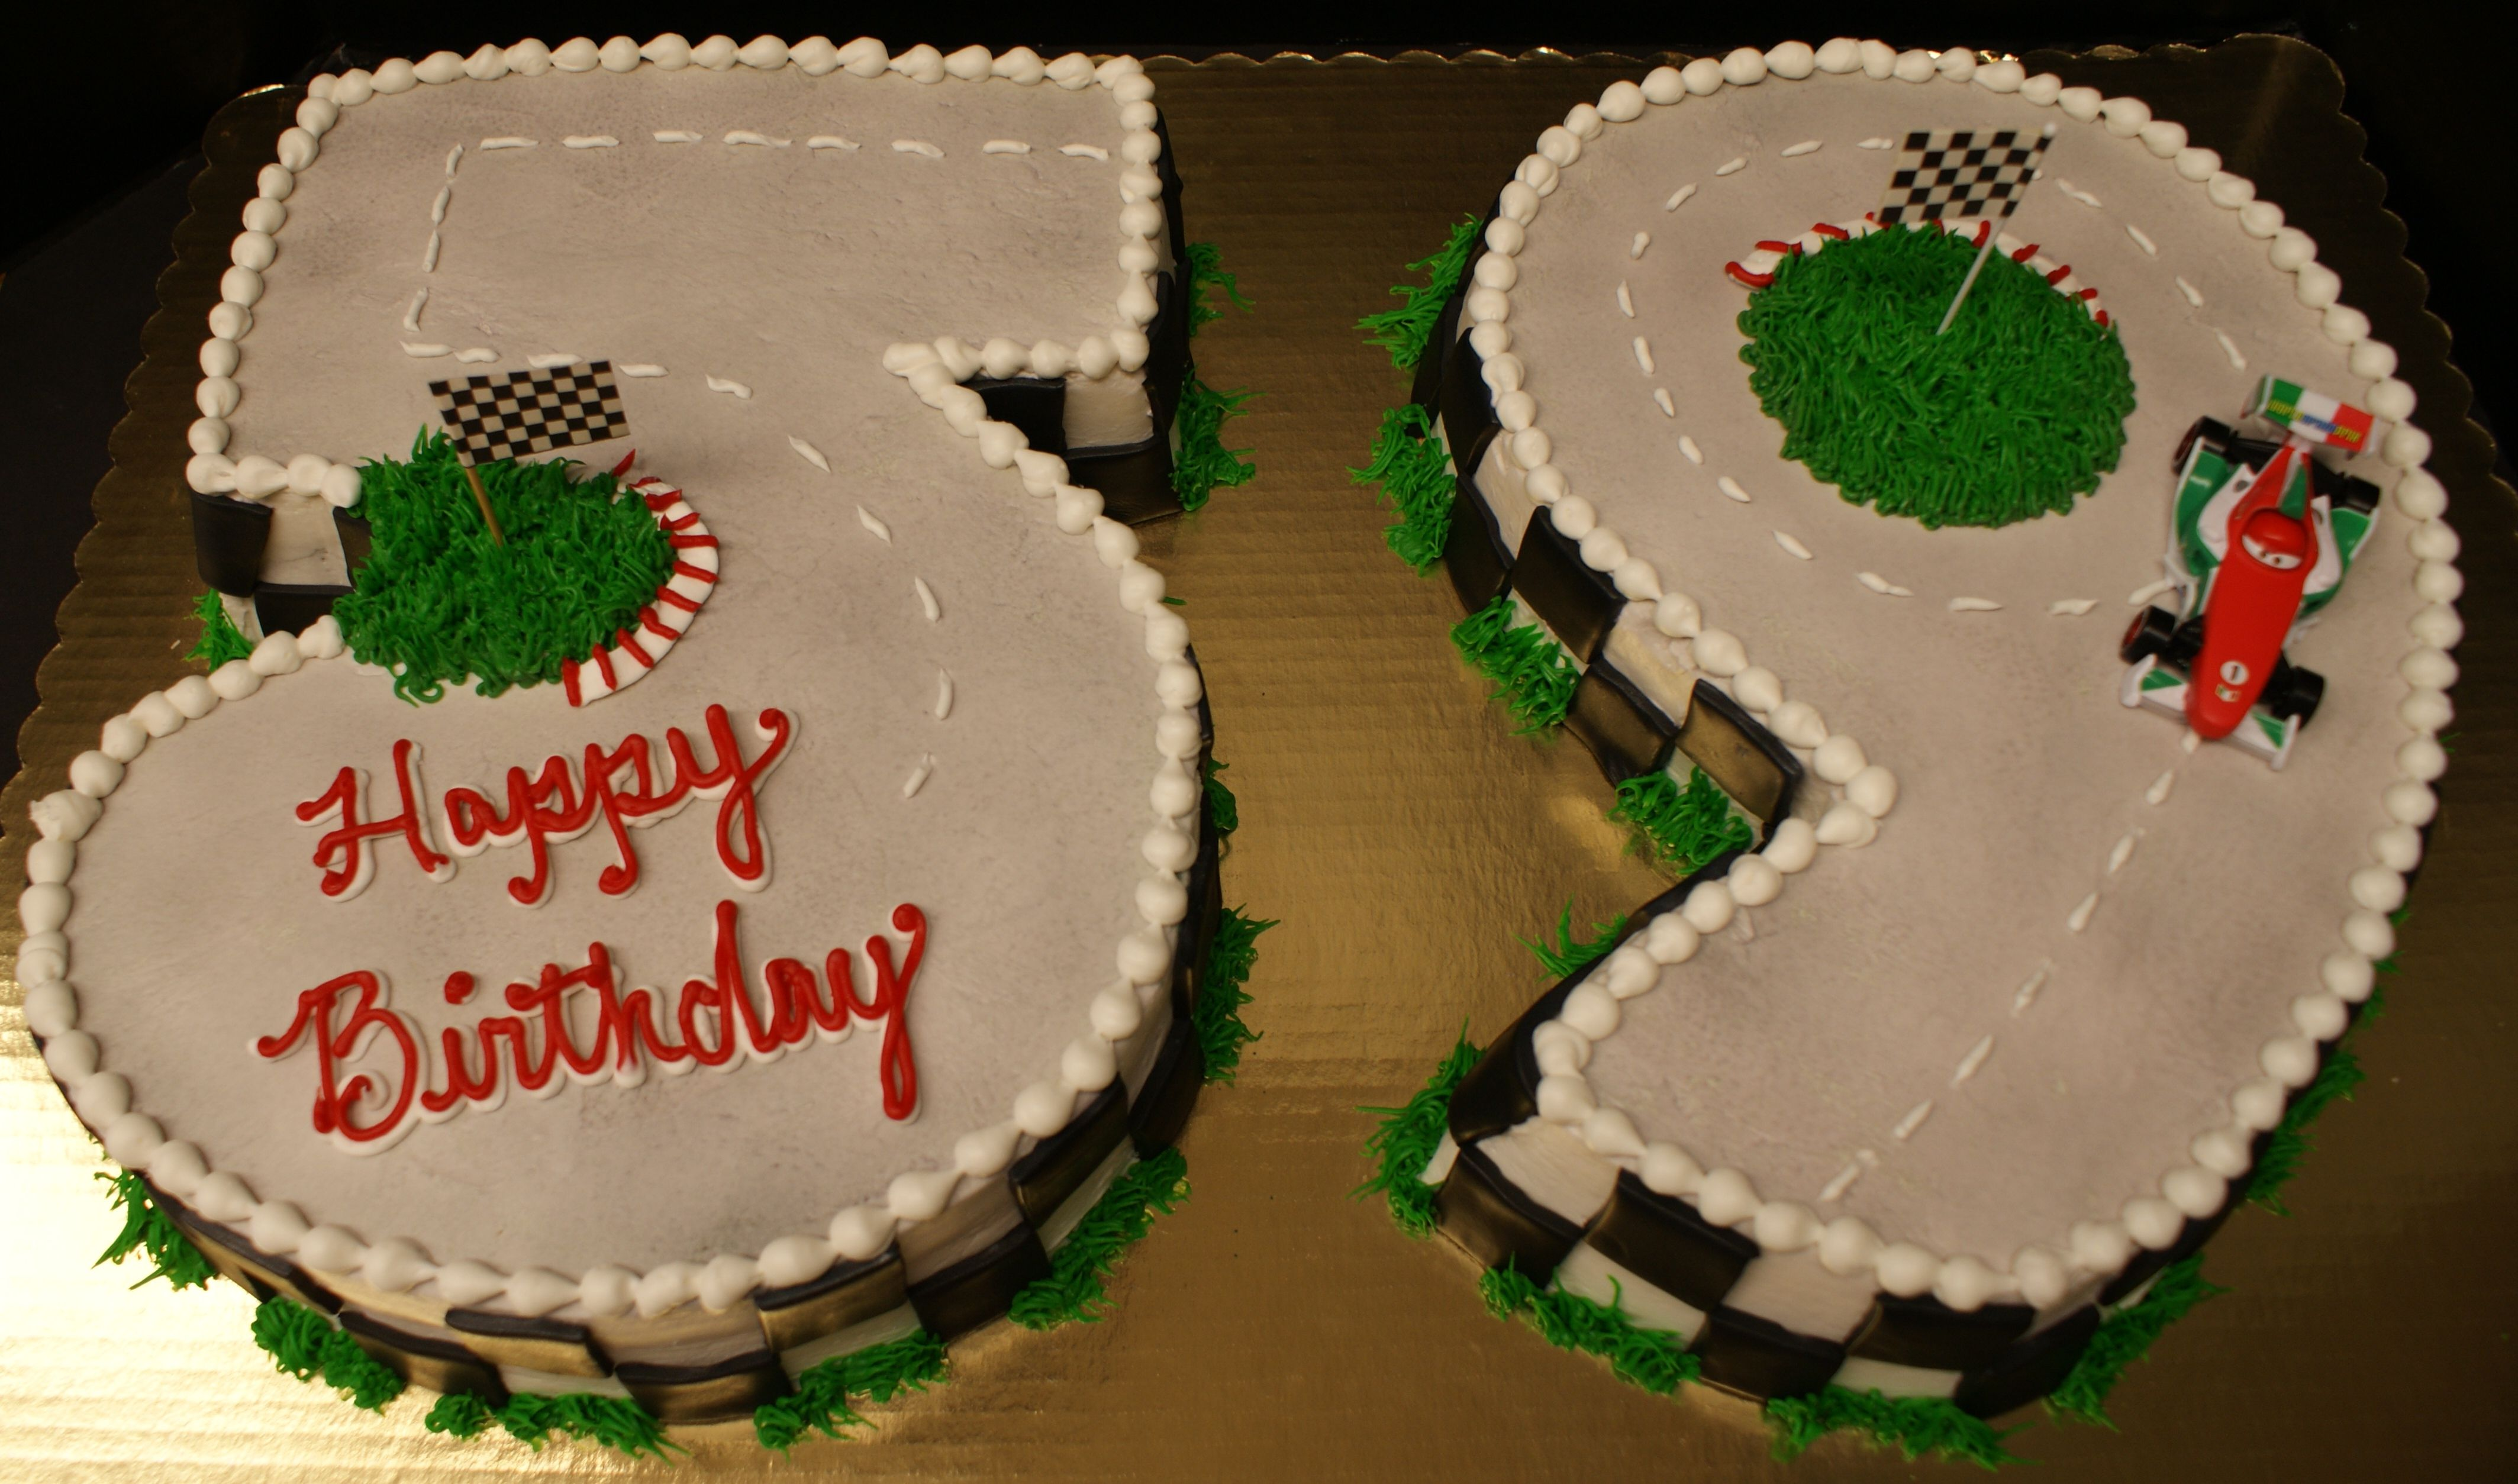 59th Birthday Cake With Race Car Theme With Images 59